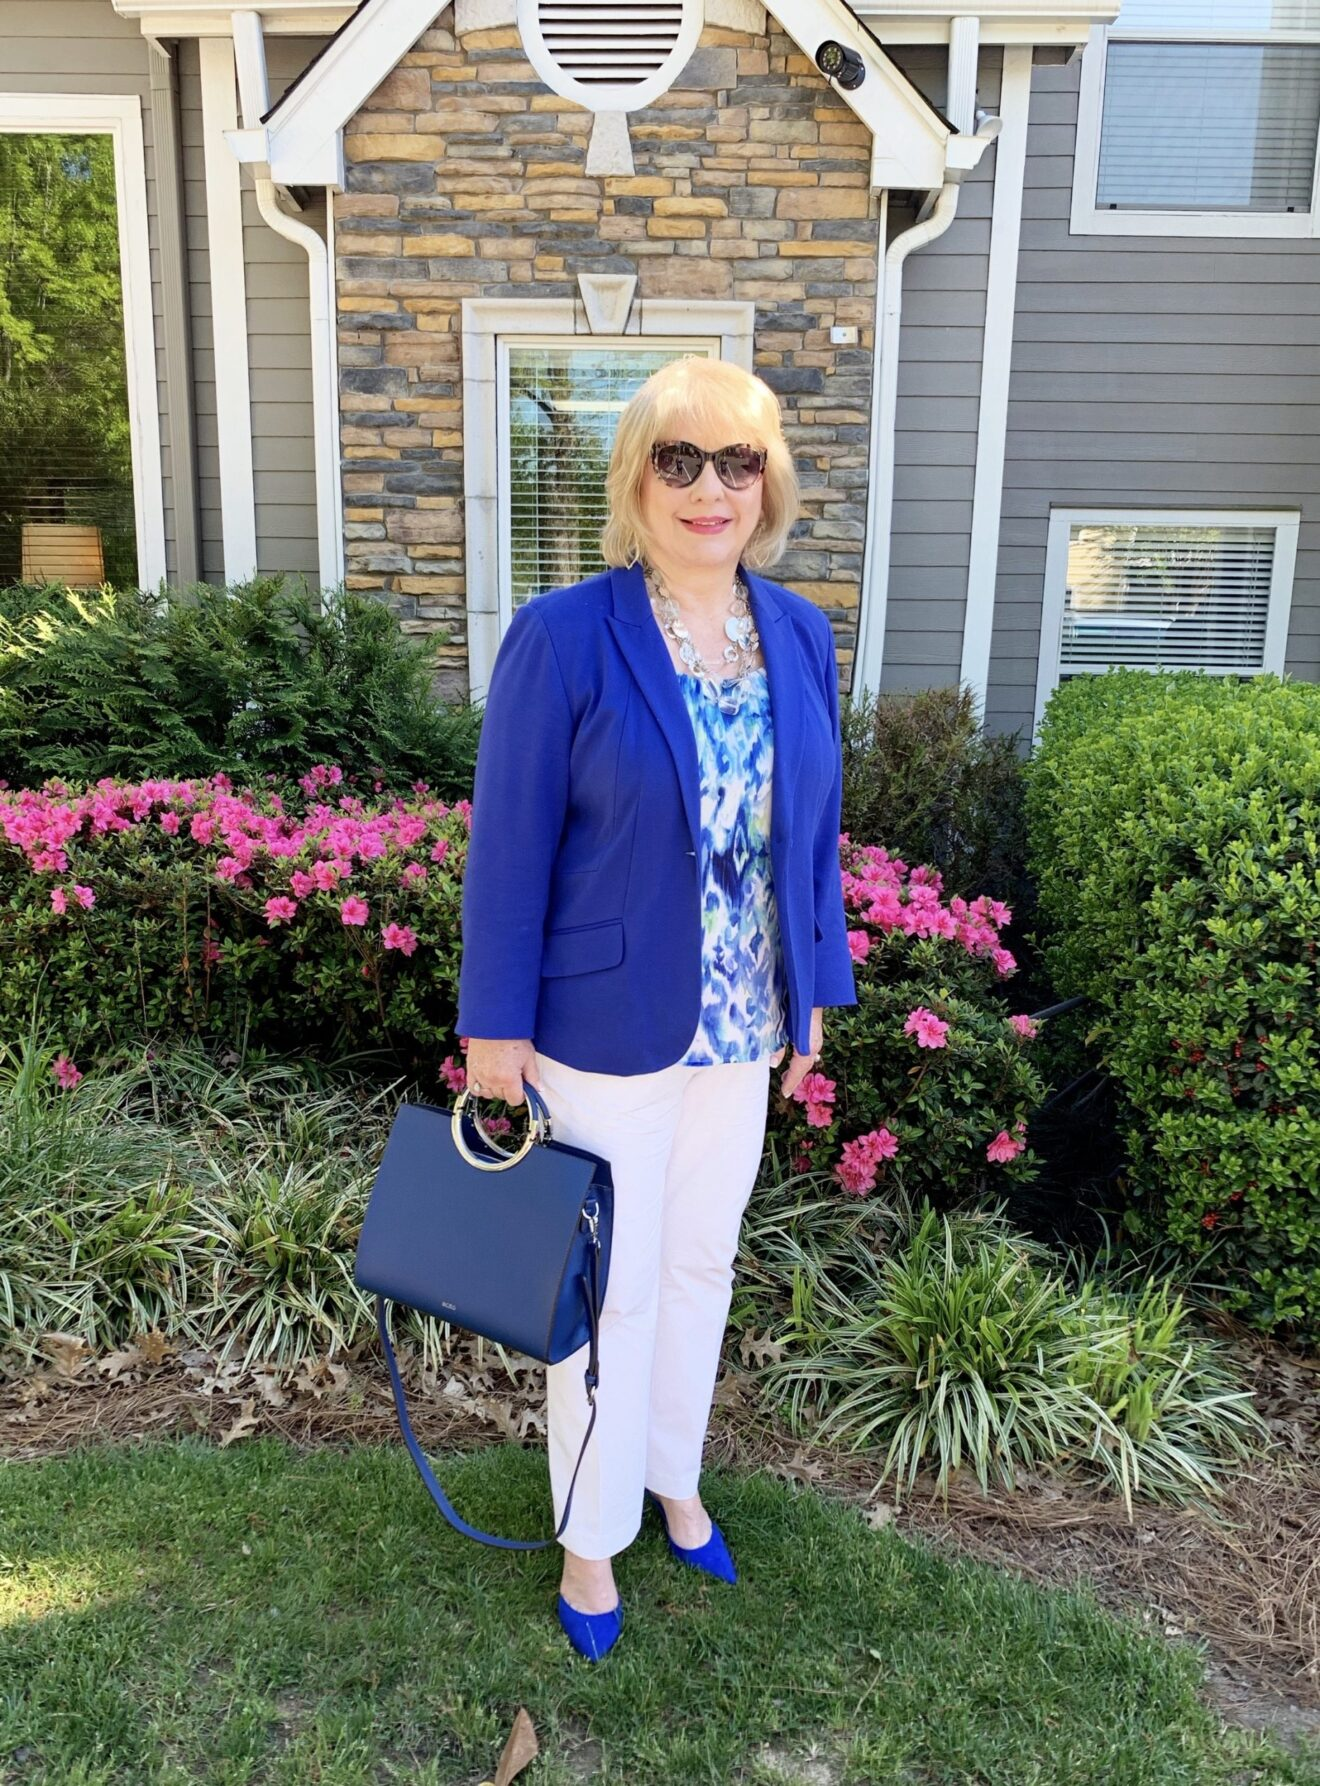 Style Story Interview Classy Colorful Confidence @StyleShennanigans Shannon Holmes Fashion Over 50 60 Confident Cobalt Blue Watercolor Ikat Outfit Story Behind The Cloth scaled